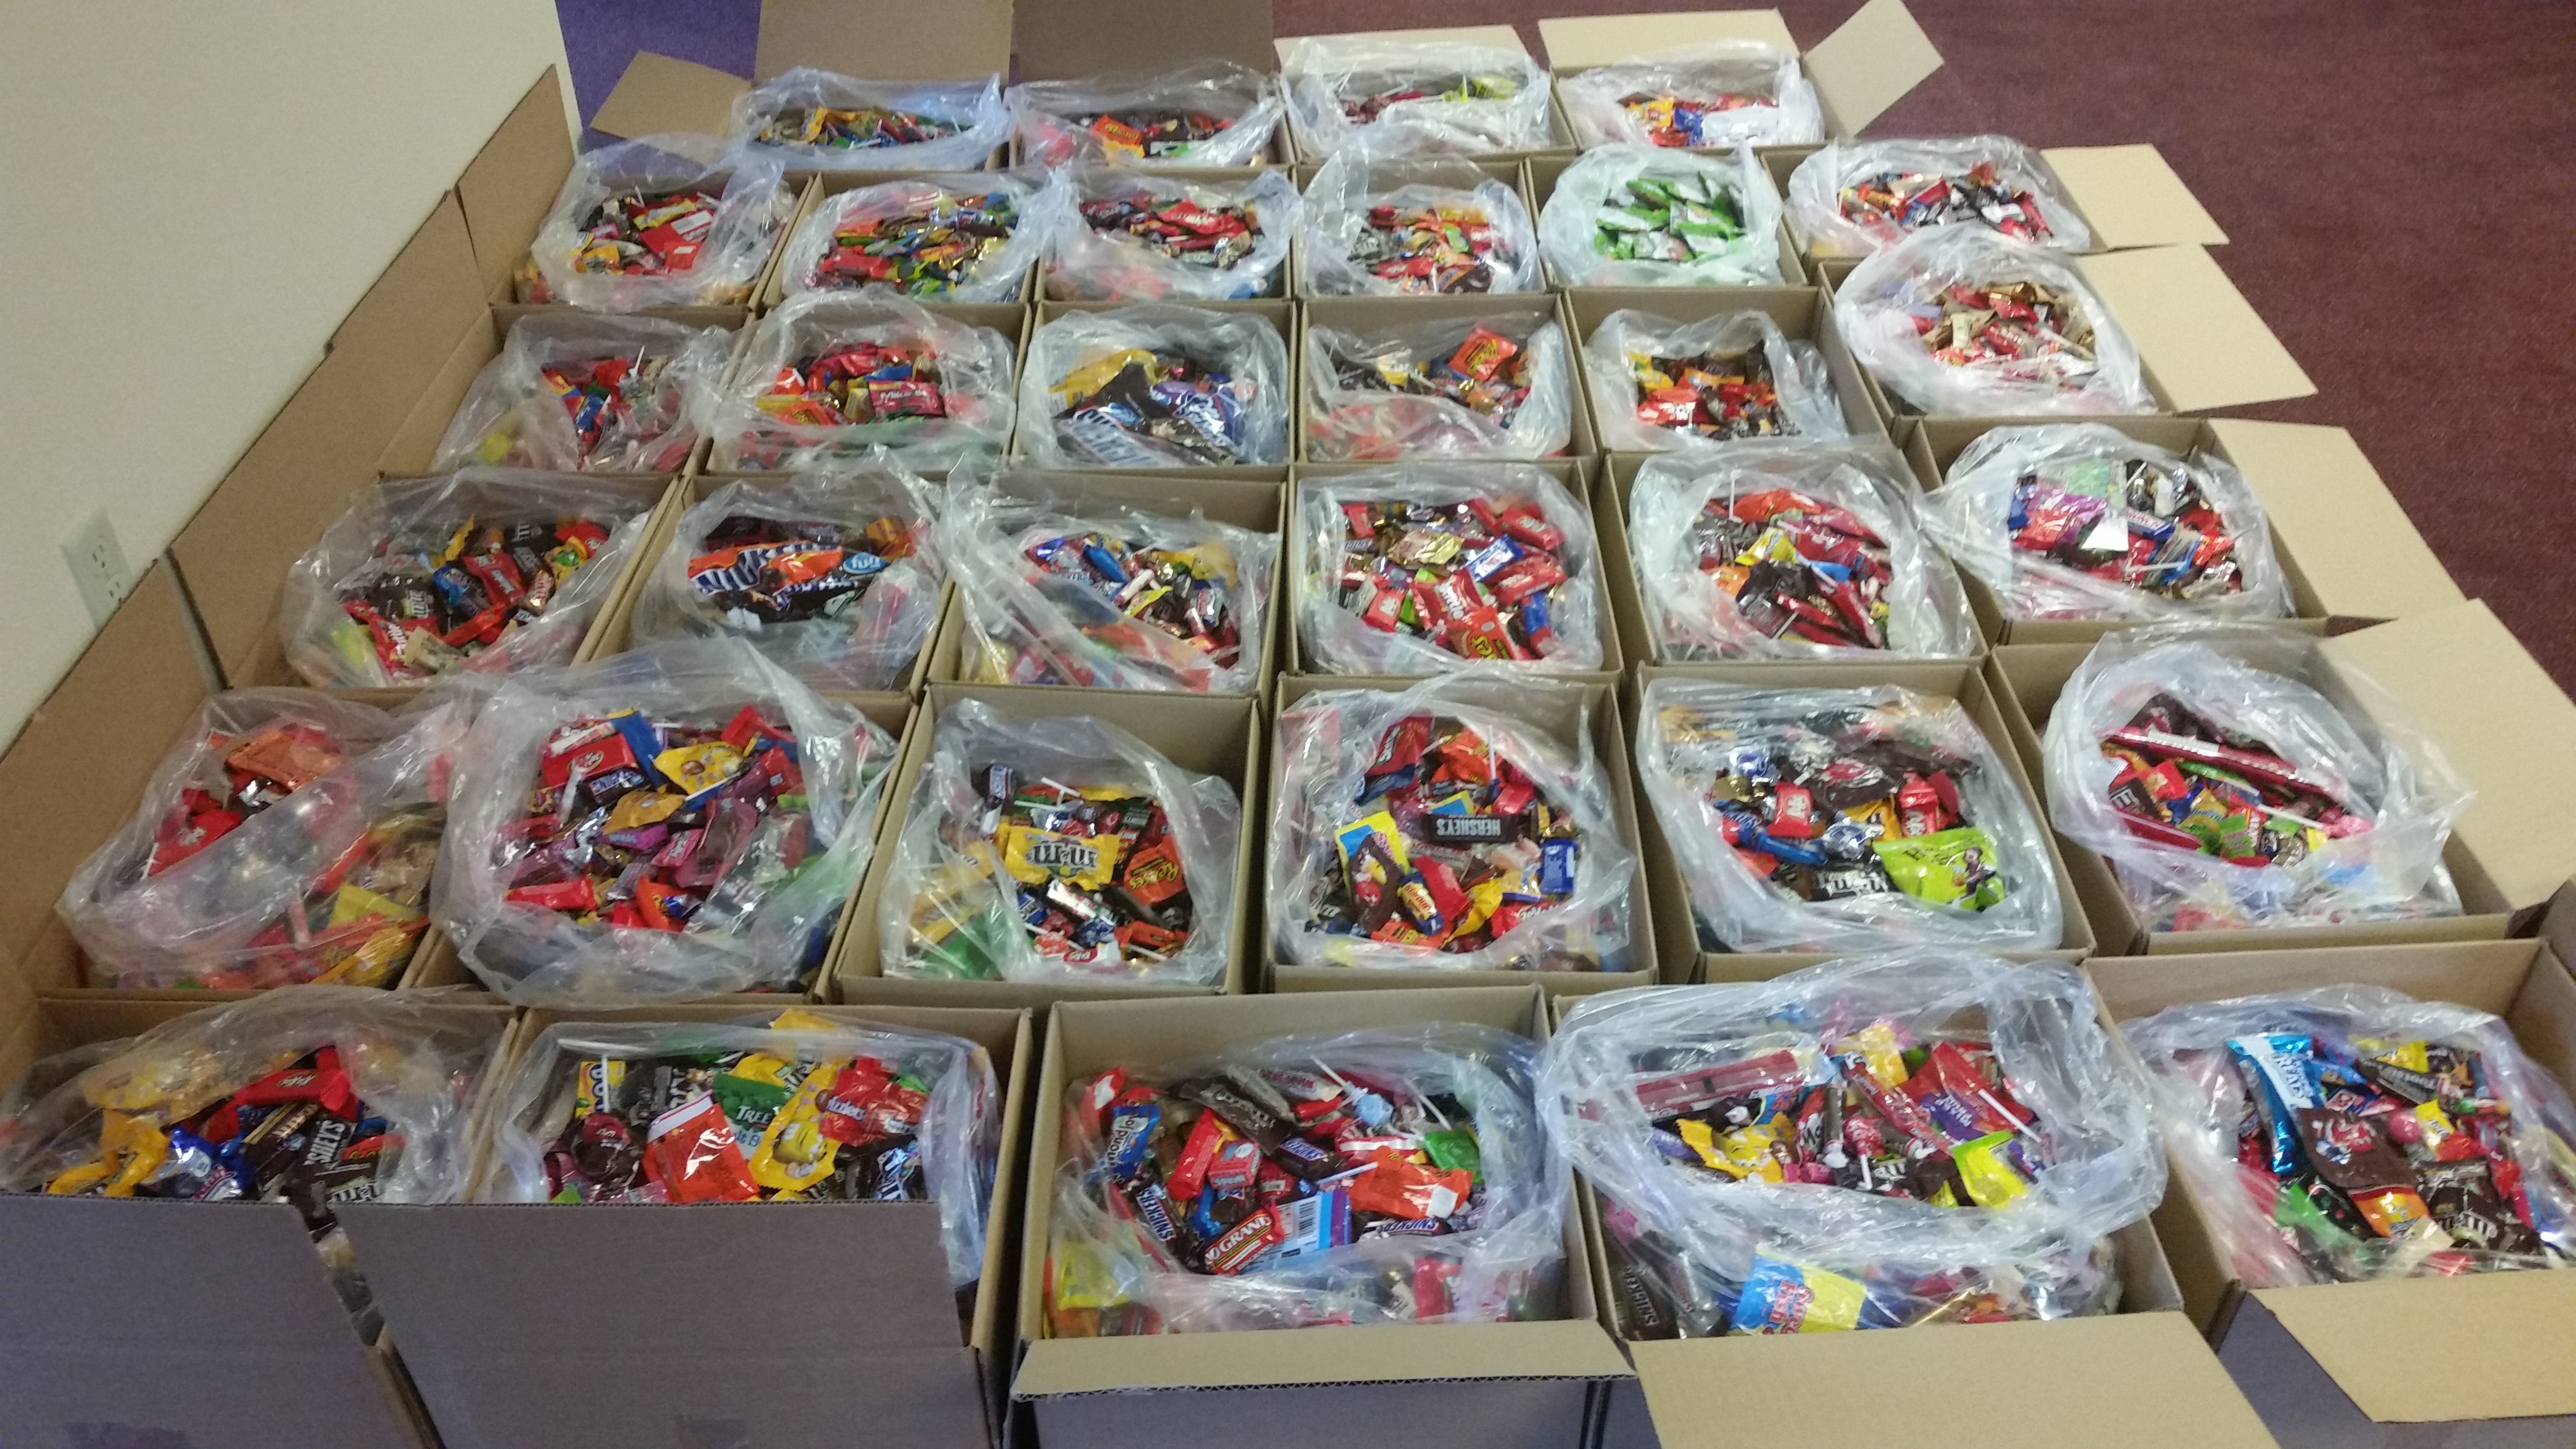 Gentech Dentist collected 821 pounds of candy this Halloween!